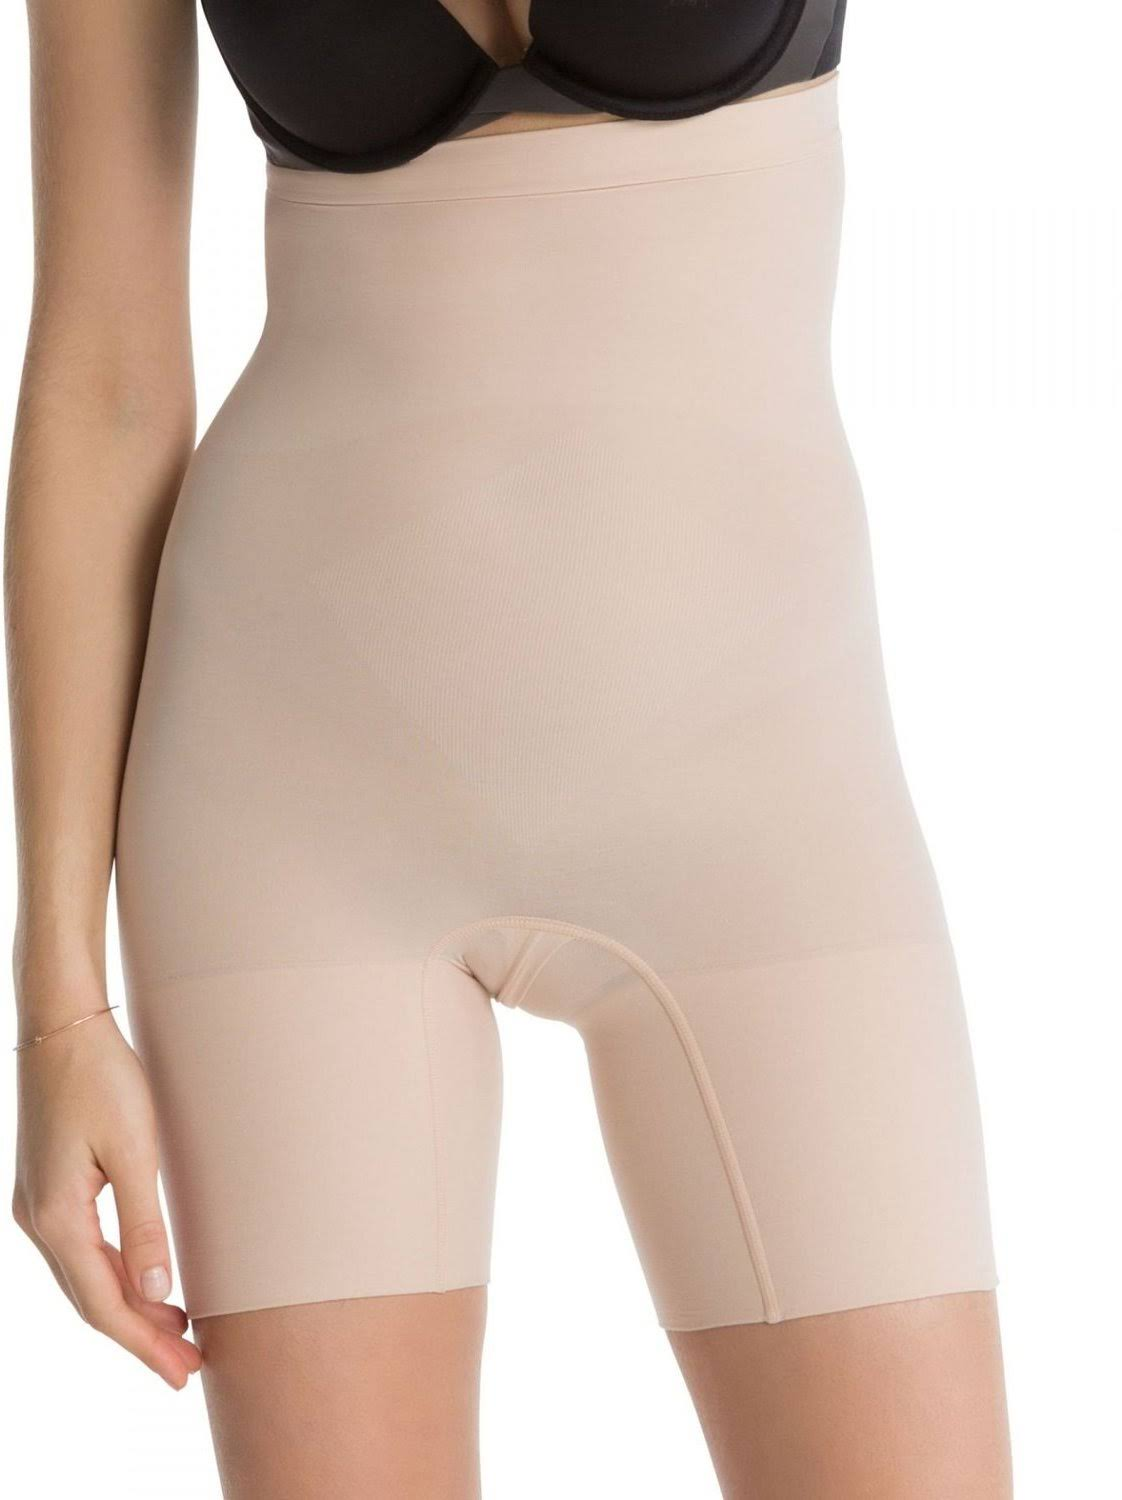 Spanx Women's Higher Power Shorts - Soft Nude, Medium